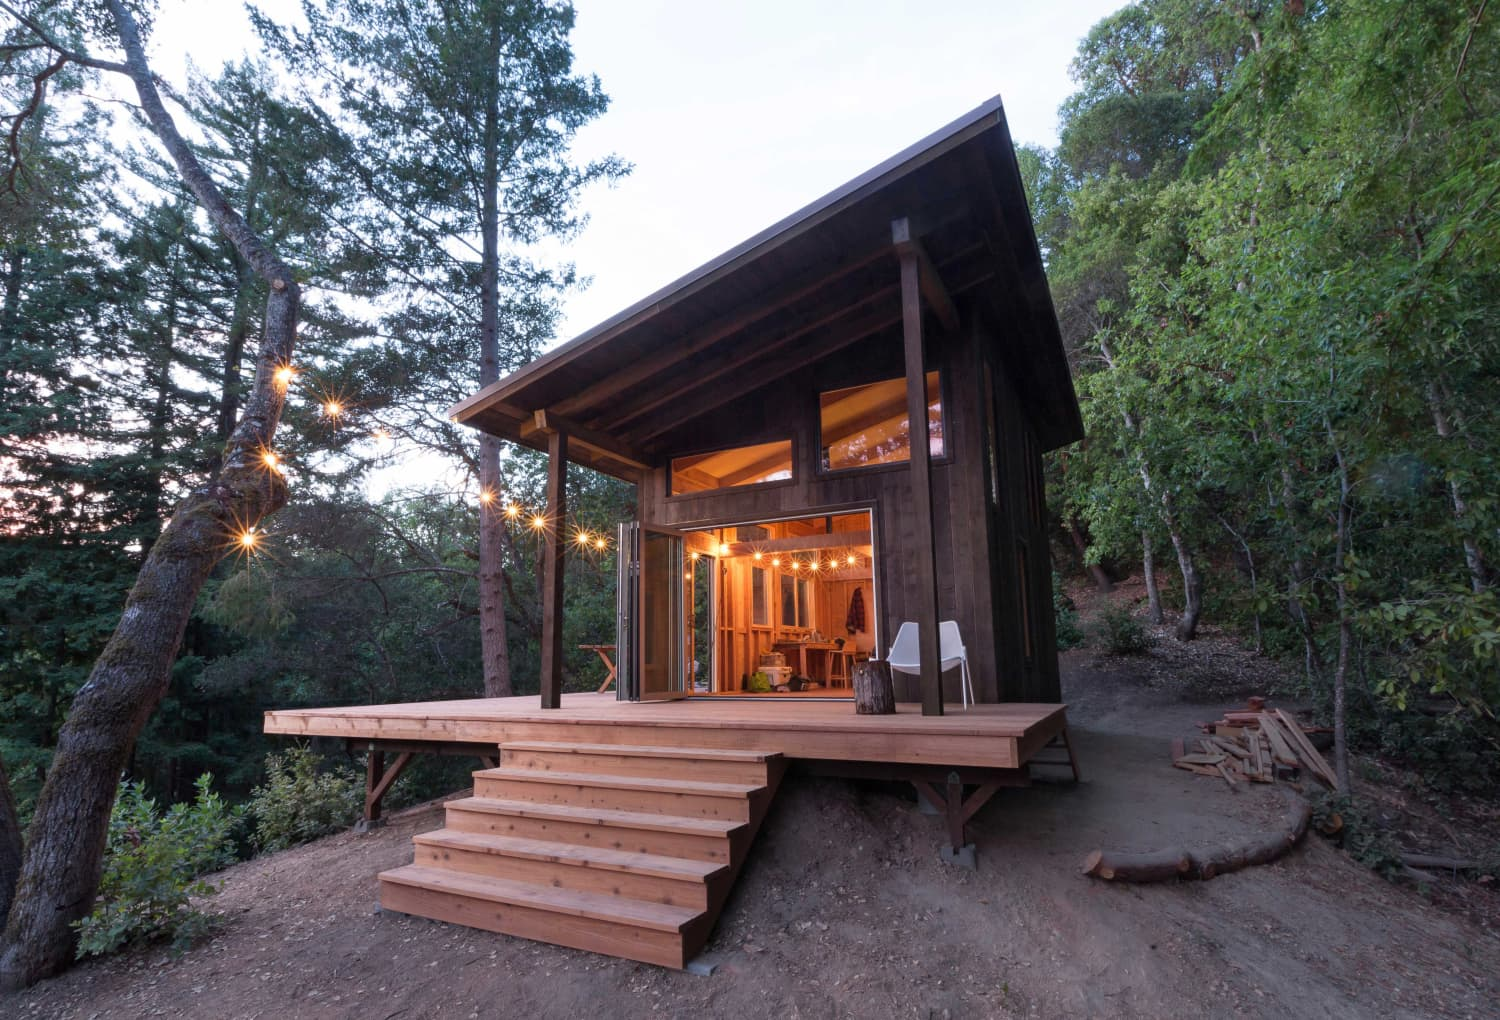 This Mountain Retreat Was Built to Escape from Urban Life